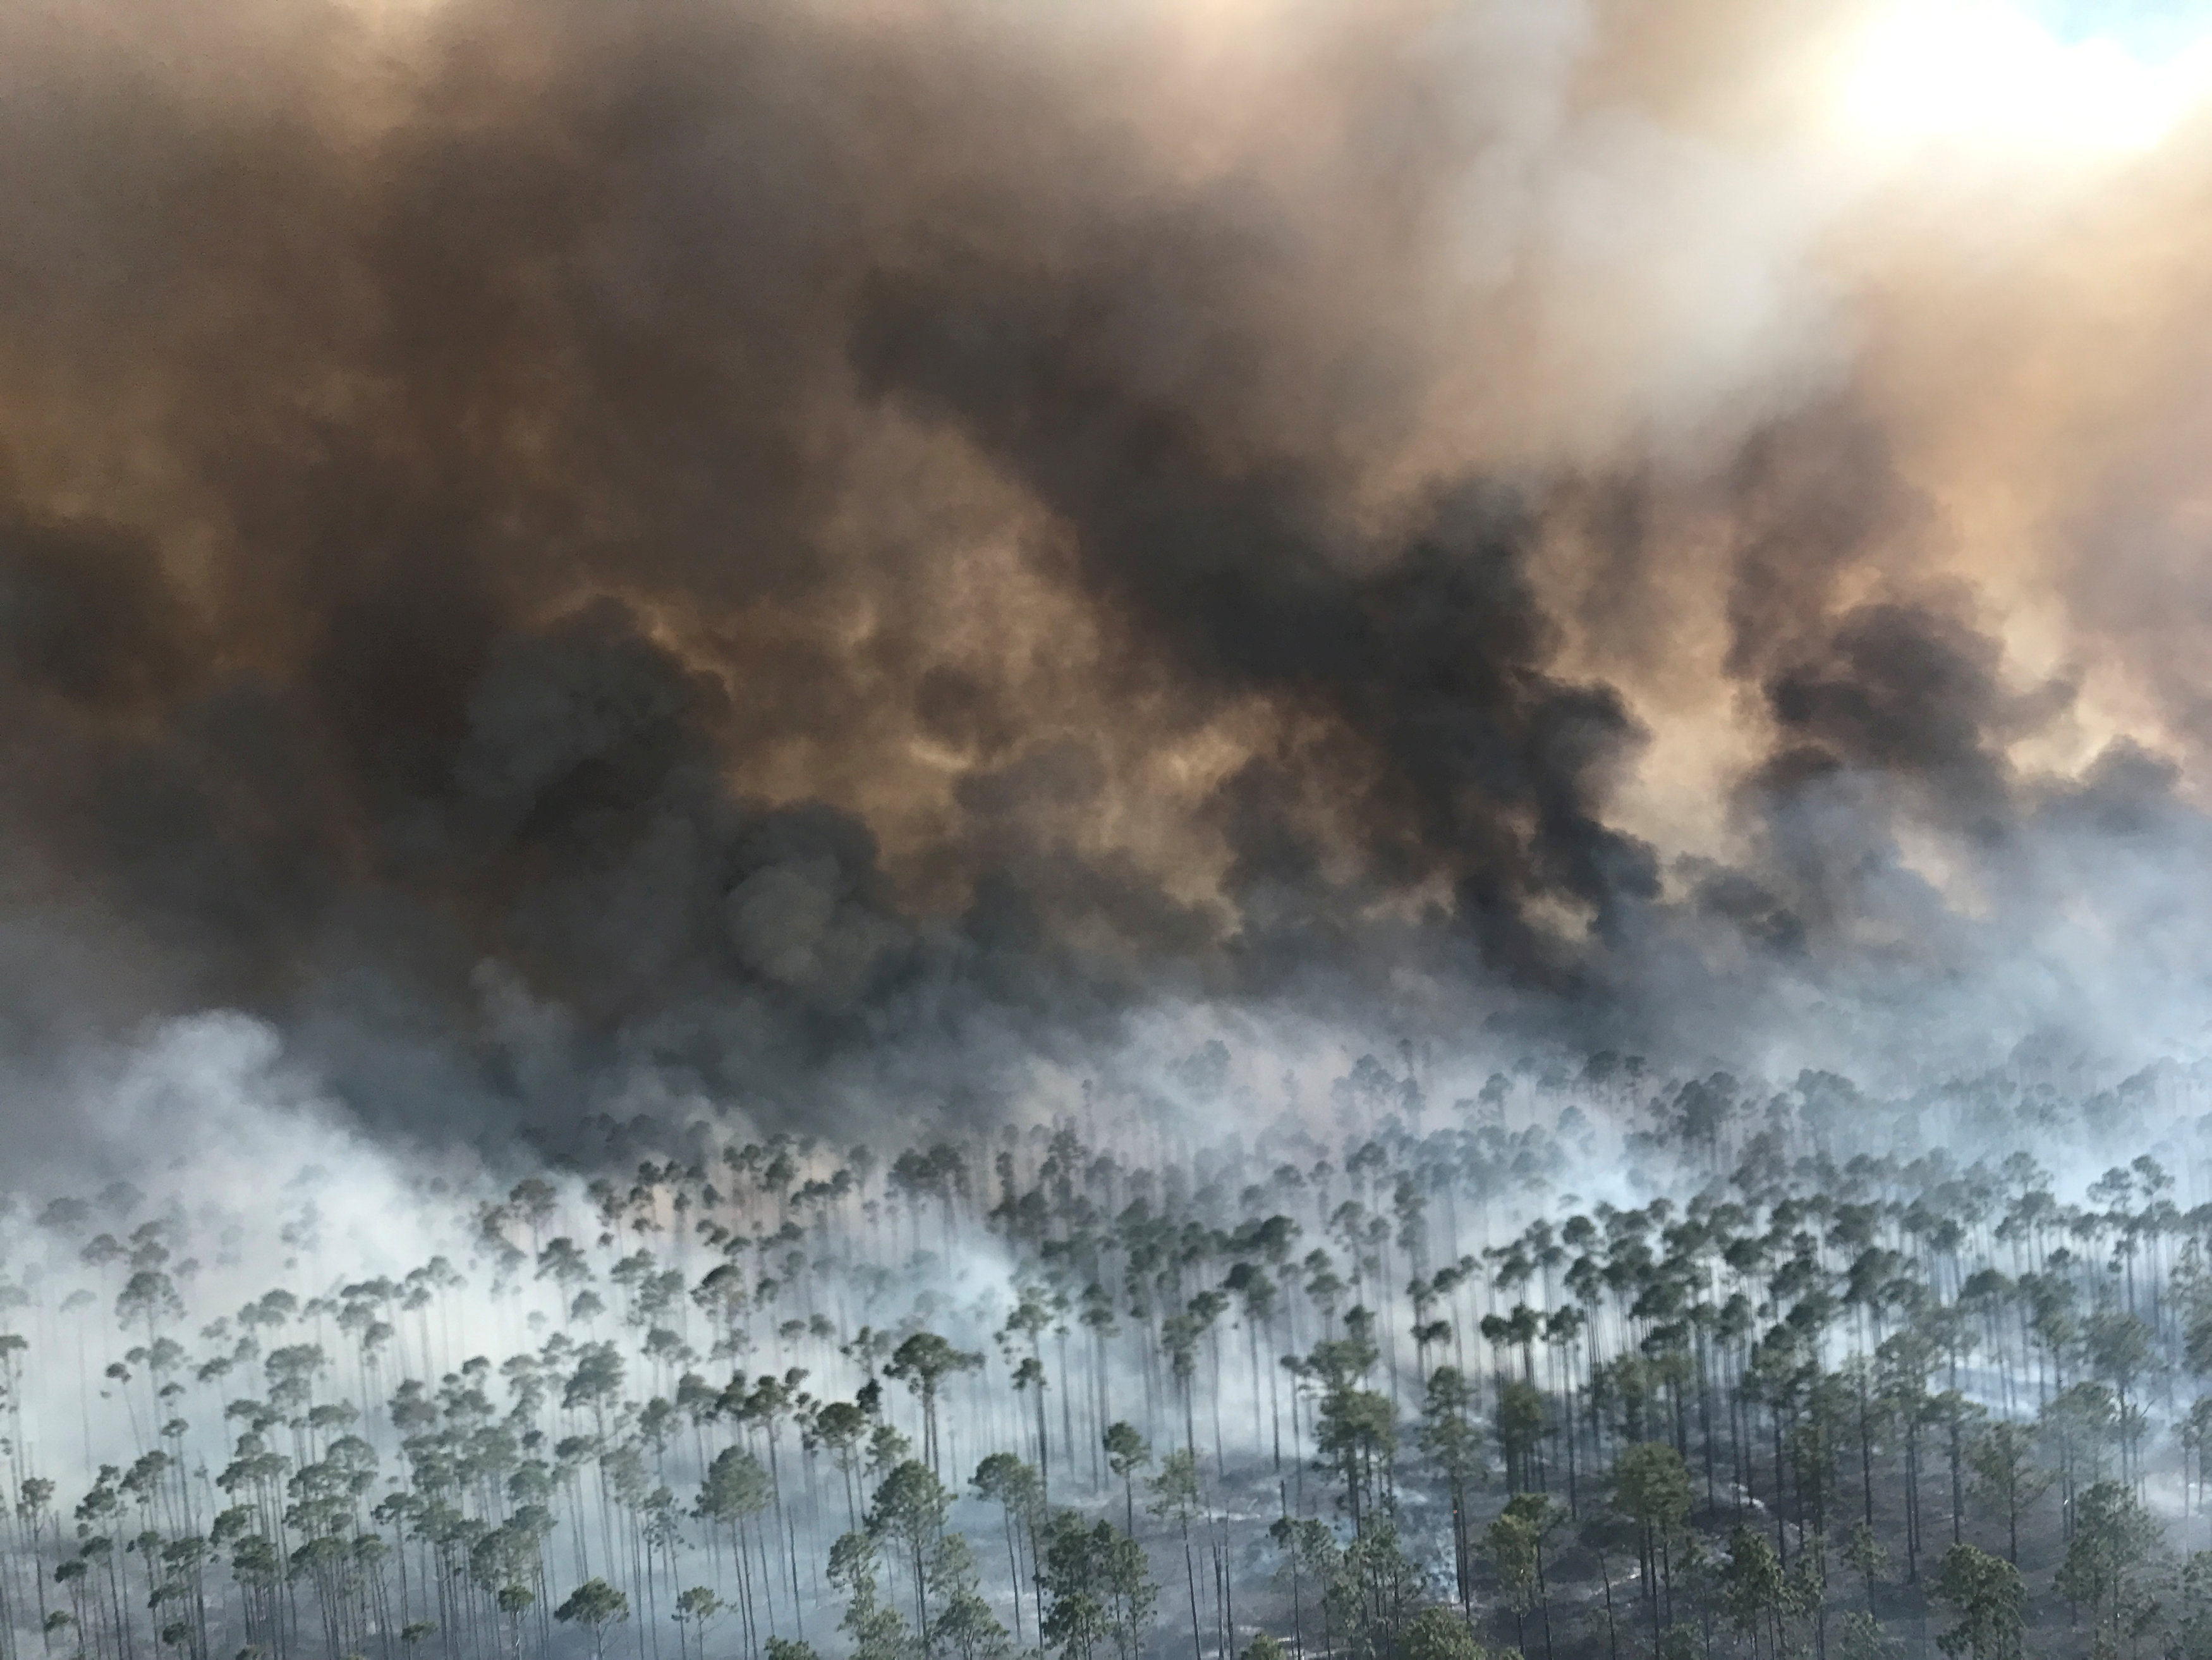 FOLKSTON 2017-05-03 The West Mims fire burns in the Okefenokee National Wildlife Refuge, Georgia, U.S. April 25, 2017. Fish and Wildlife Service/Michael Lusk/Handout via REUTERS FOR EDITORIAL USE ONLY. NOT FOR SALE FOR MARKETING OR ADVERTISING CAMPAIGNSTHIS IMAGE HAS BEEN SUPPLIED BY A THIRD PARTY. IT IS DISTRIBUTED, EXACTLY AS RECEIVED BY REUTERS, AS A SERVICE TO CLIENTS TPX IMAGES OF THE DAY Photo: / REUTERS / TT / kod 72000